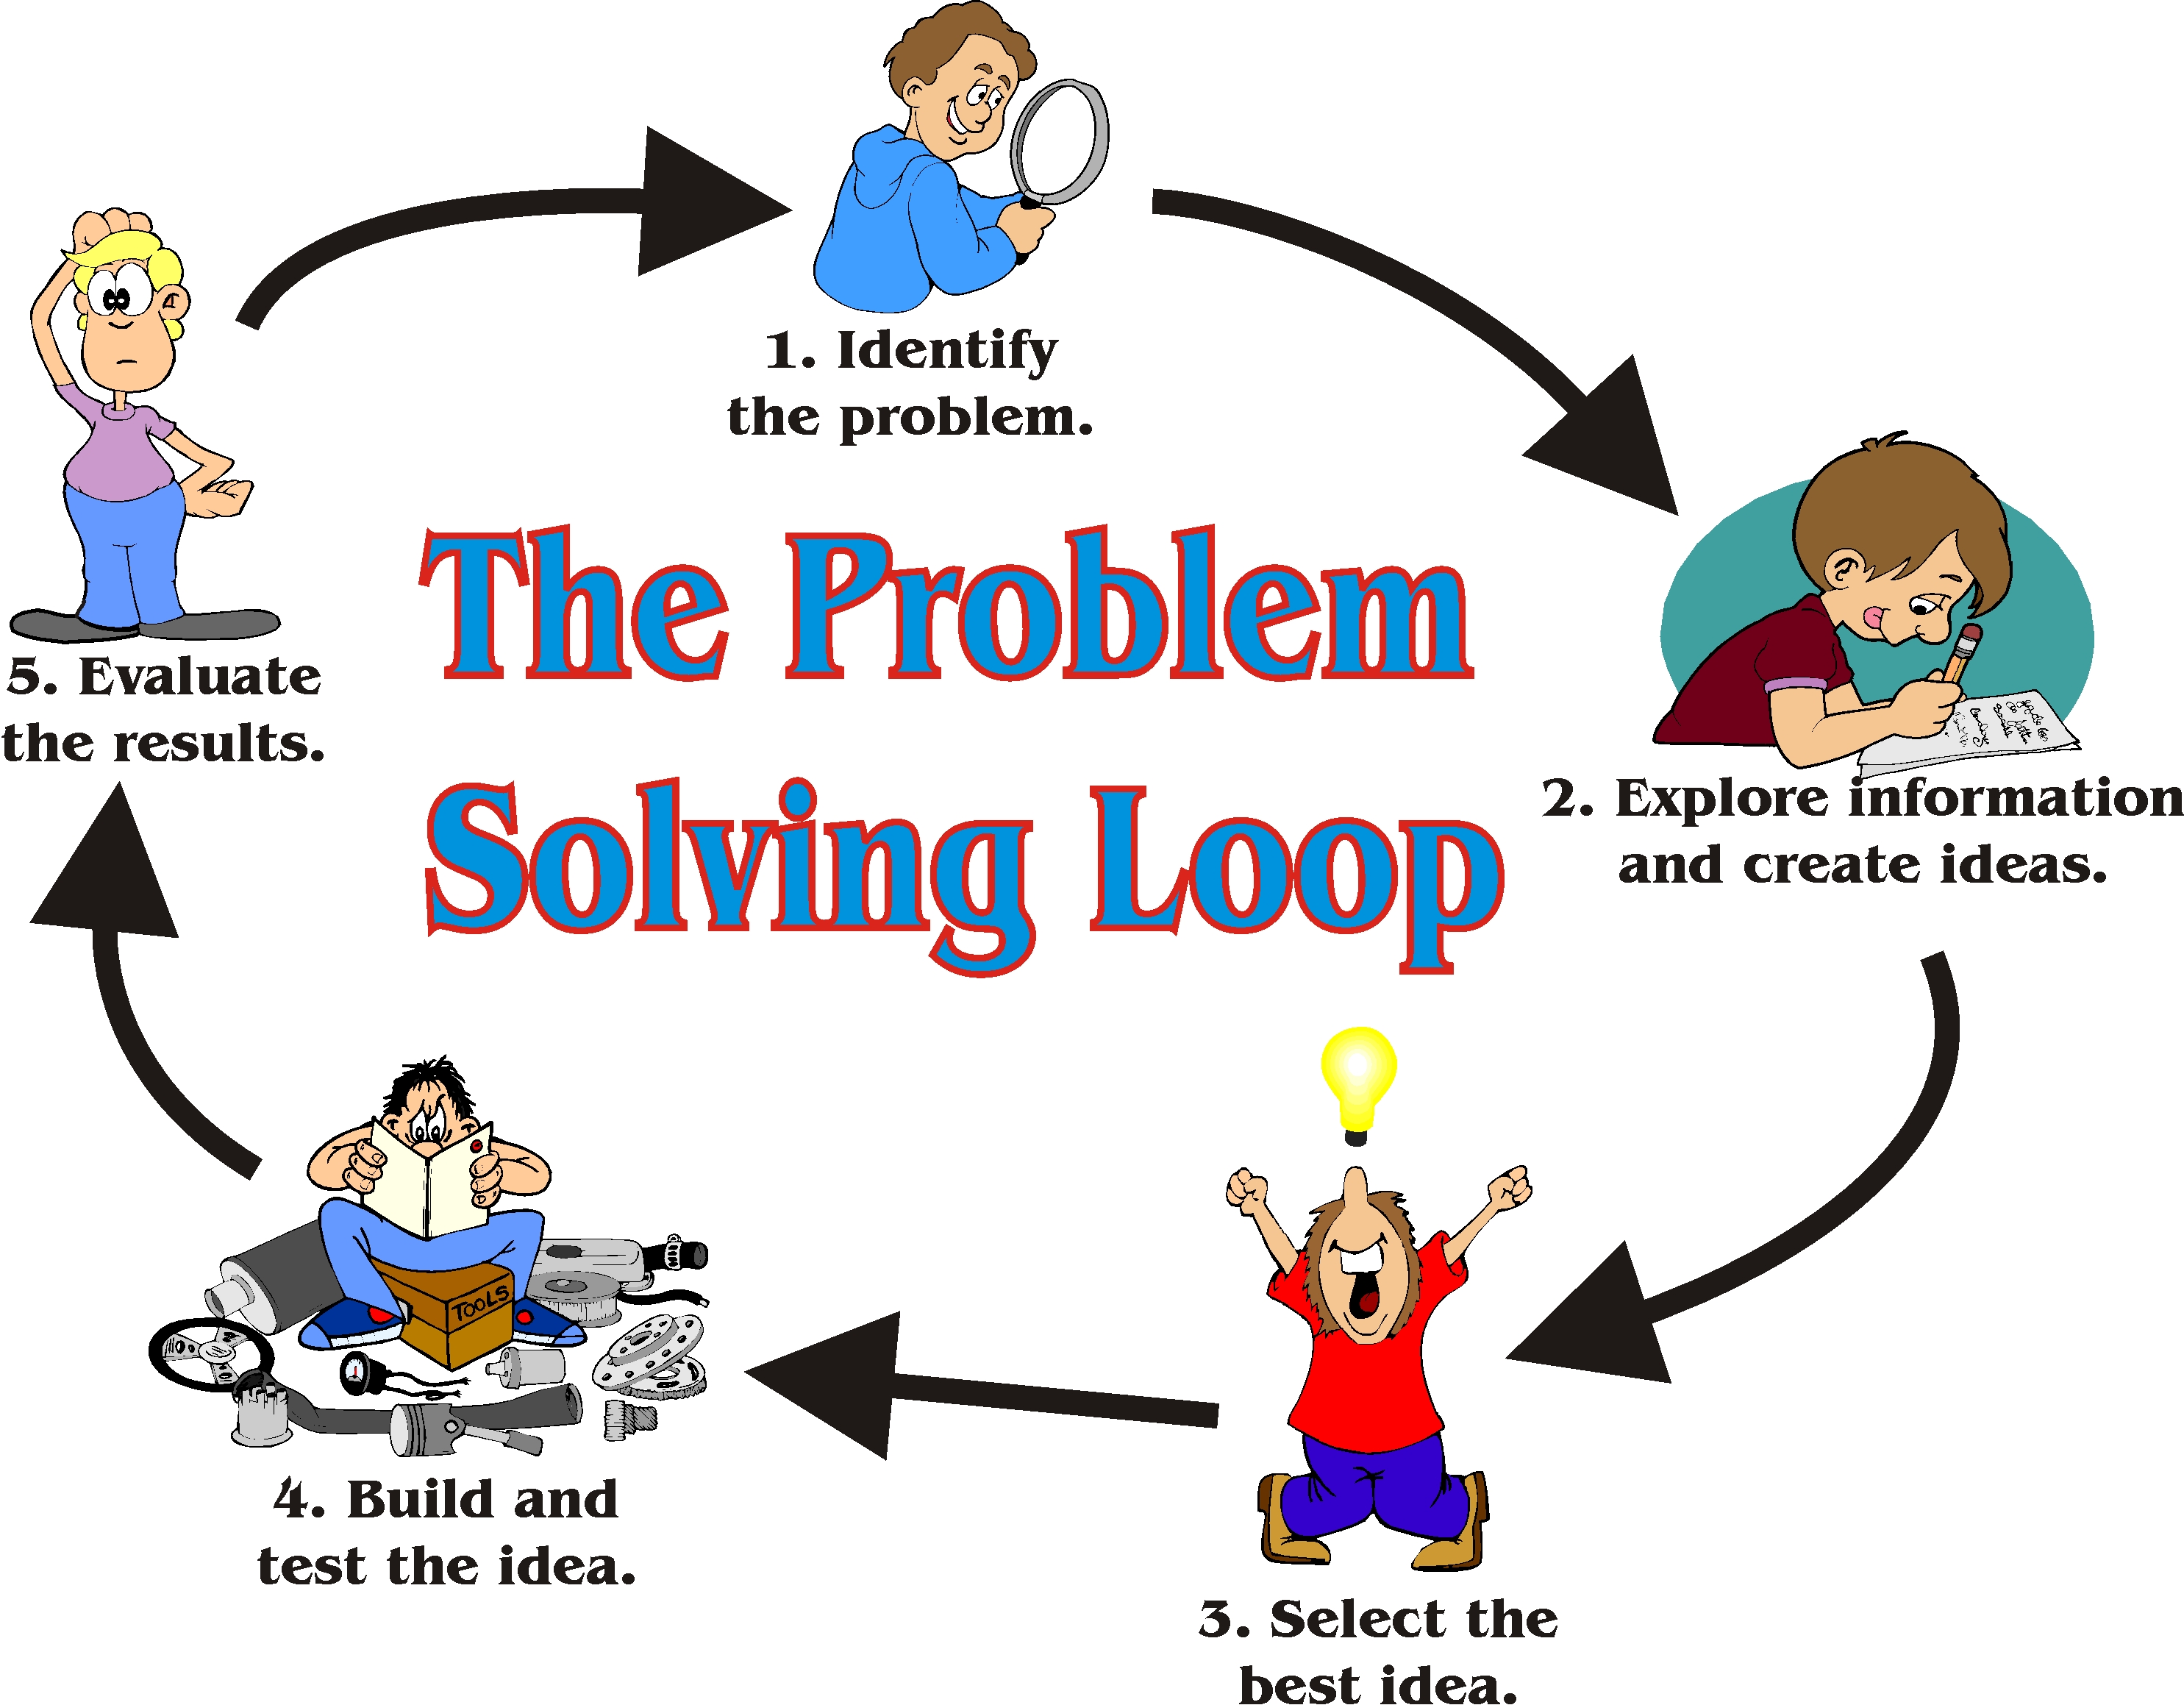 strategies for problem solving in business why not try order a strategies for problem solving in business why not try order a custom written essay from us